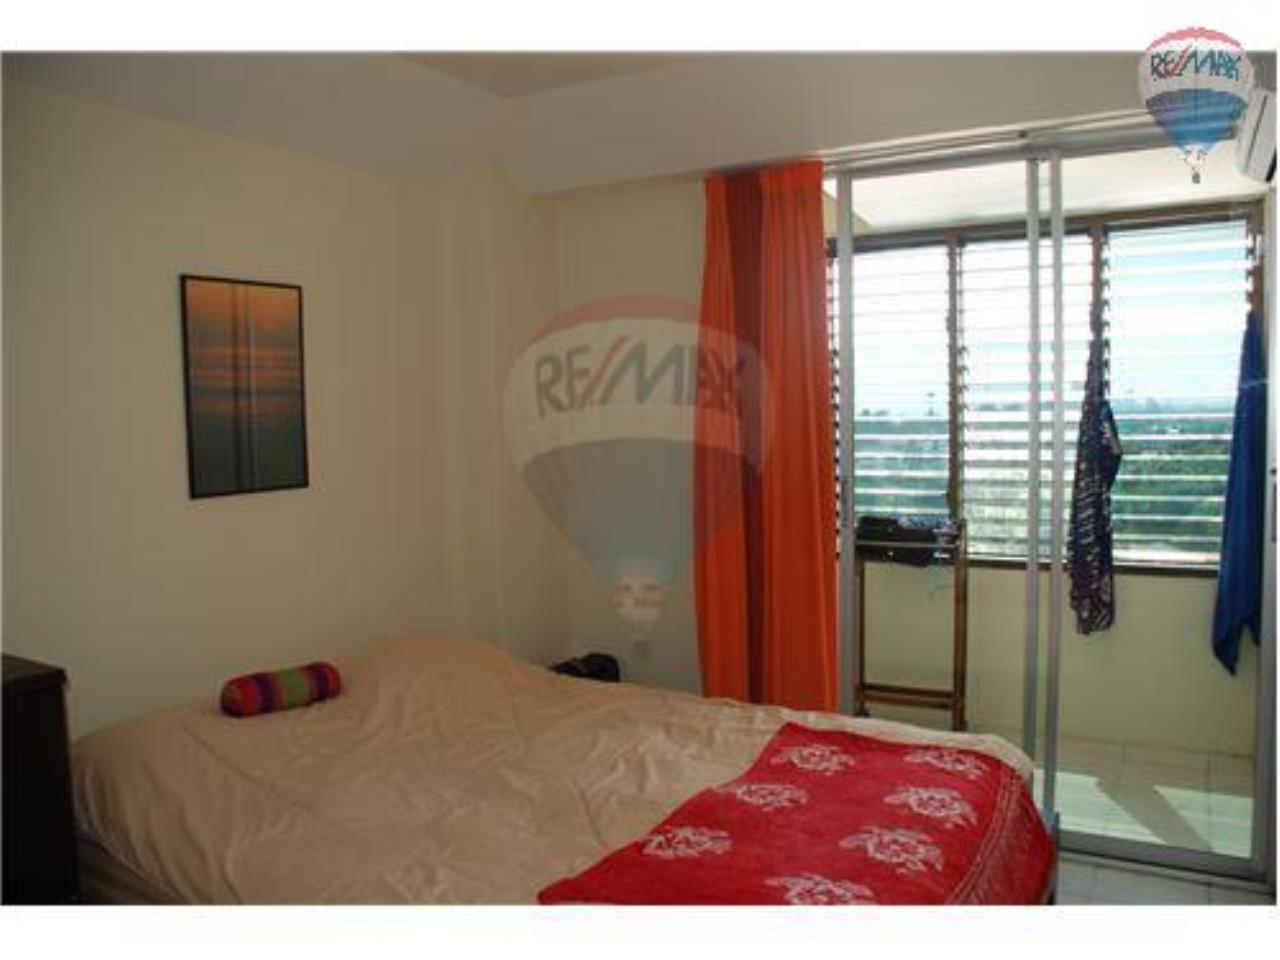 RE/MAX Beach Town Agency's  Catterya Condo Cha-Am 275/274 3